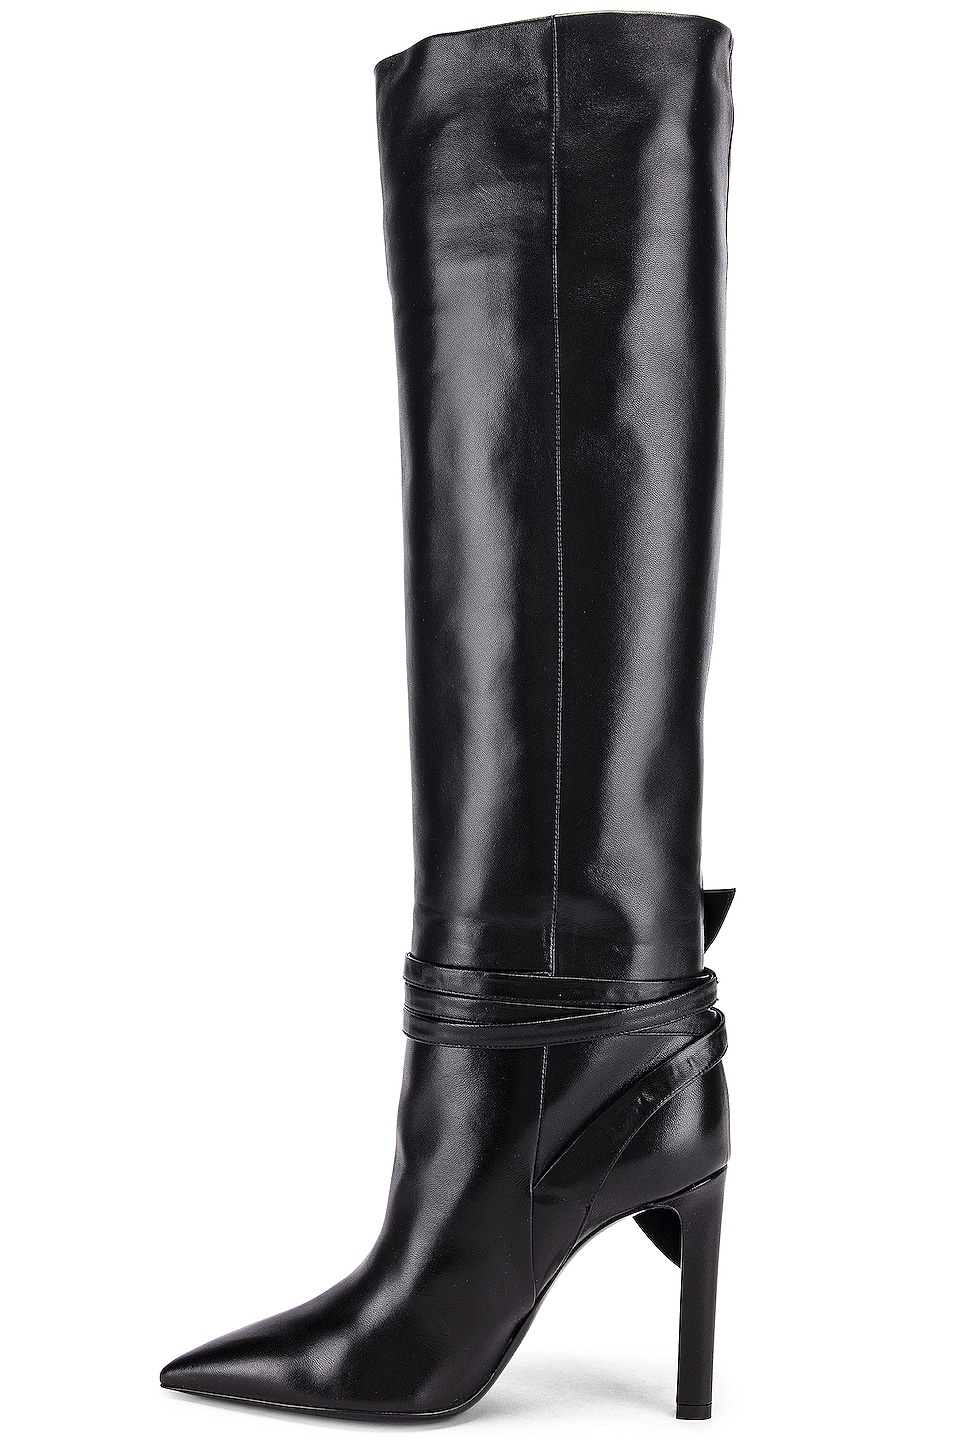 Image 5 of Saint Laurent Kate Boots in Black